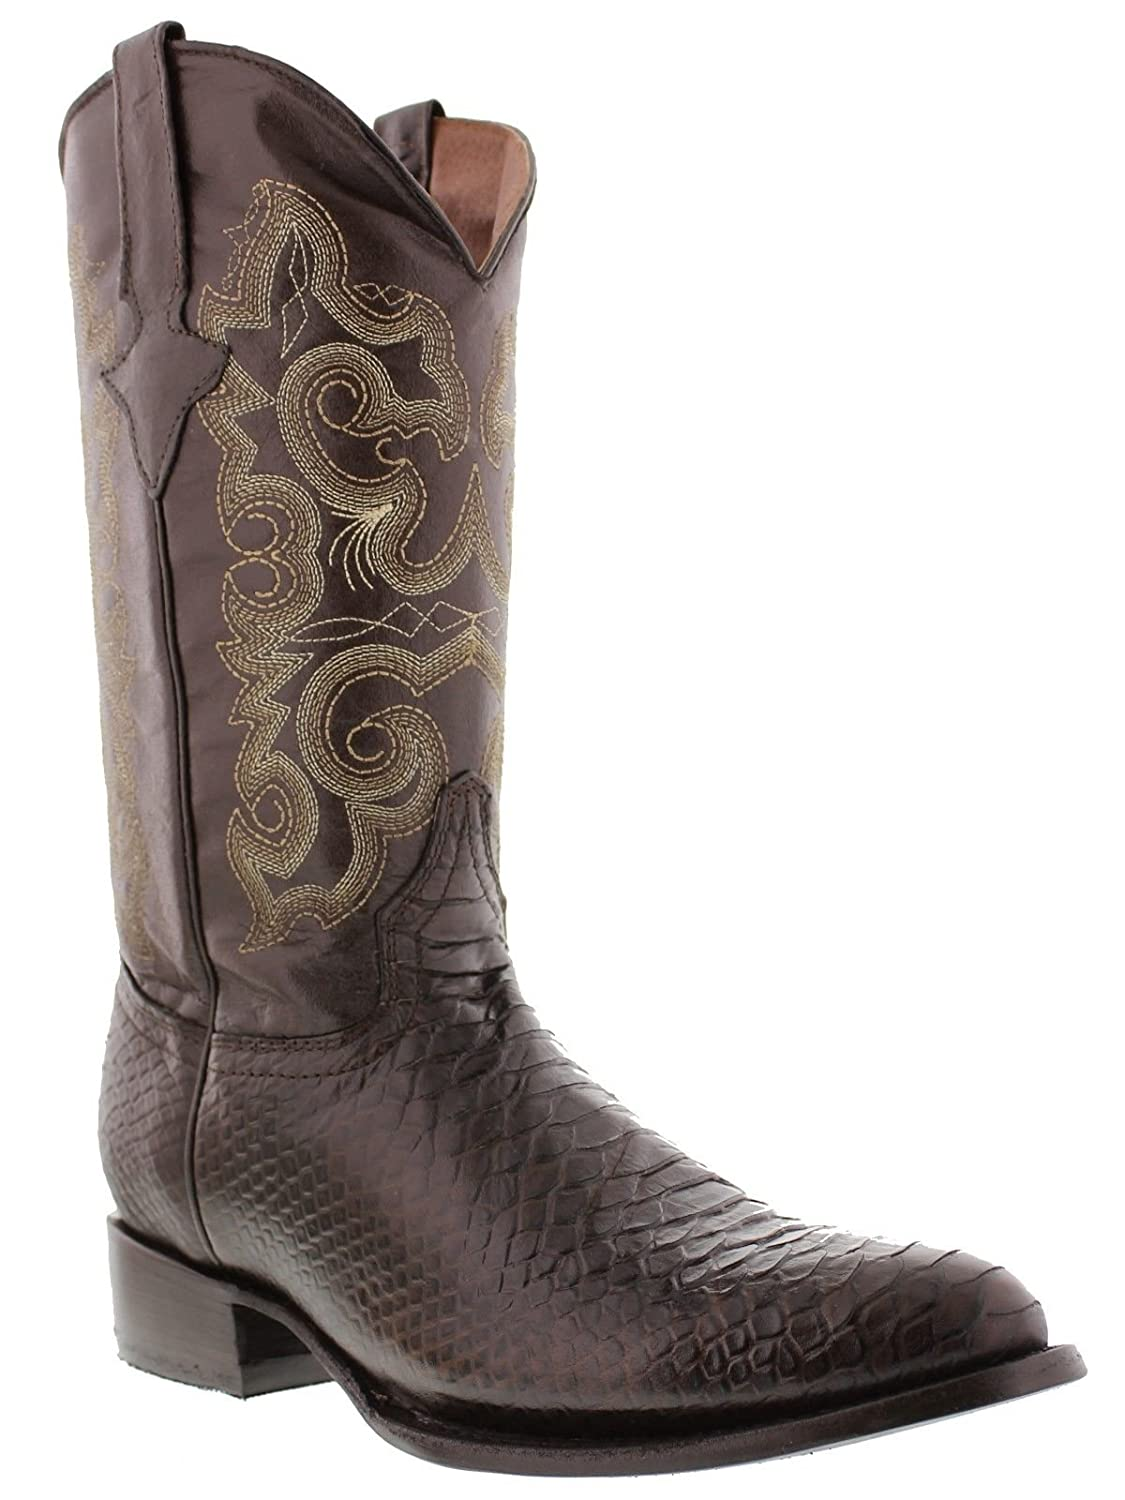 Men's New Python Snake Lather Cowboy Western J Toe Boots Brown